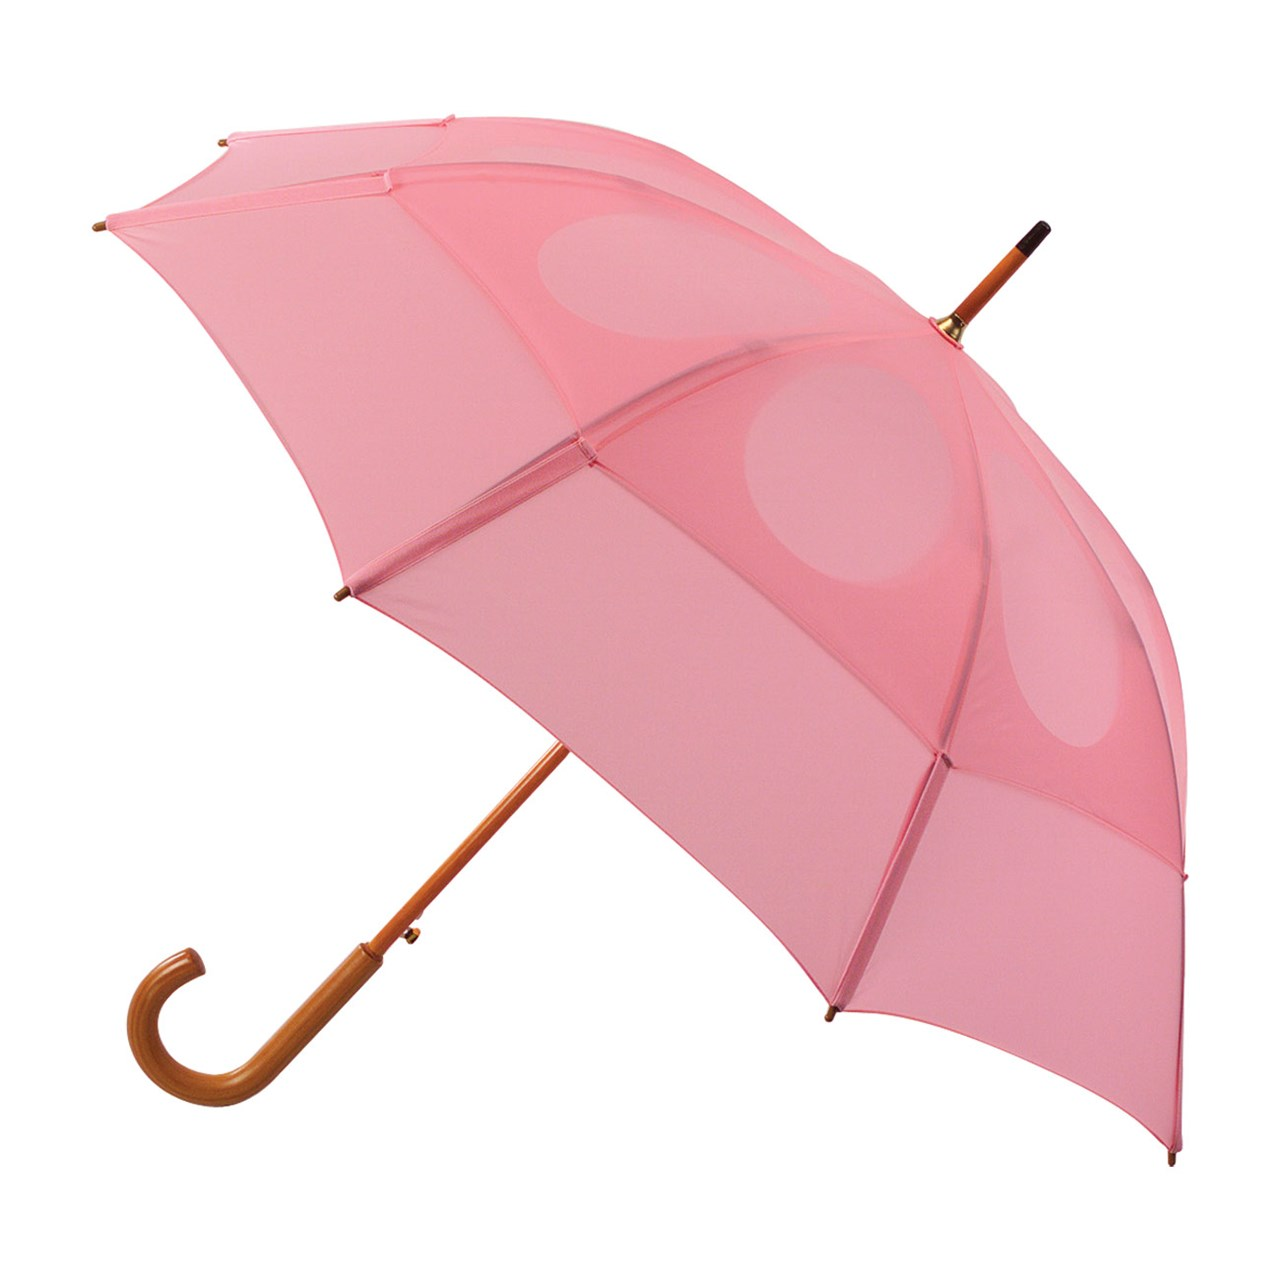 Gustbuster Classic Umbrella with Wooden J-Handle - Pink